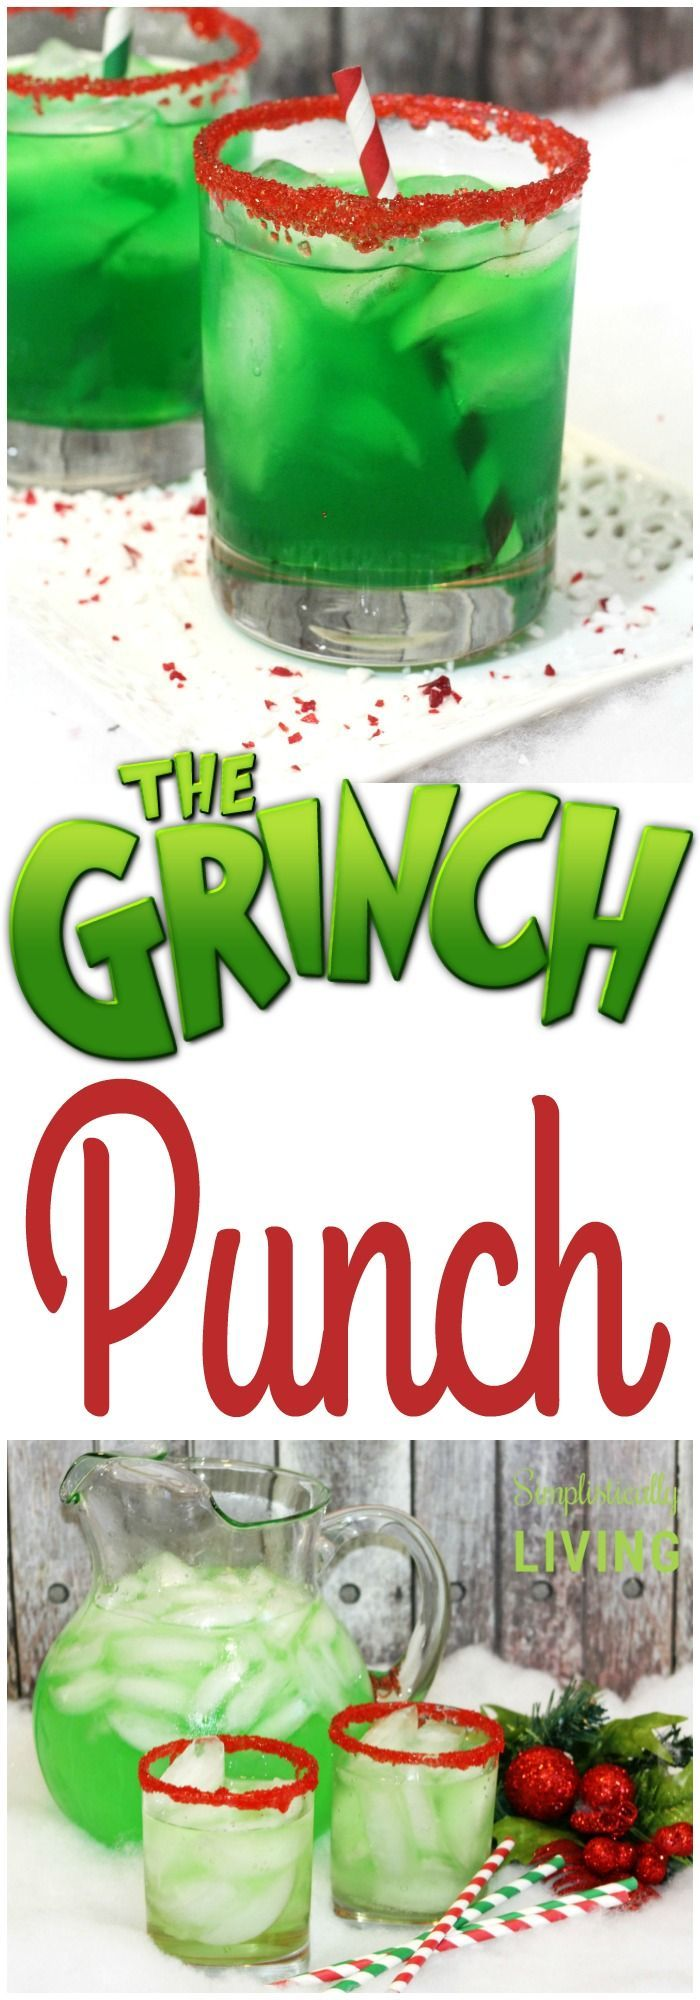 Grinch Punch add 100 proof Vodka for an adult holiday beverage.